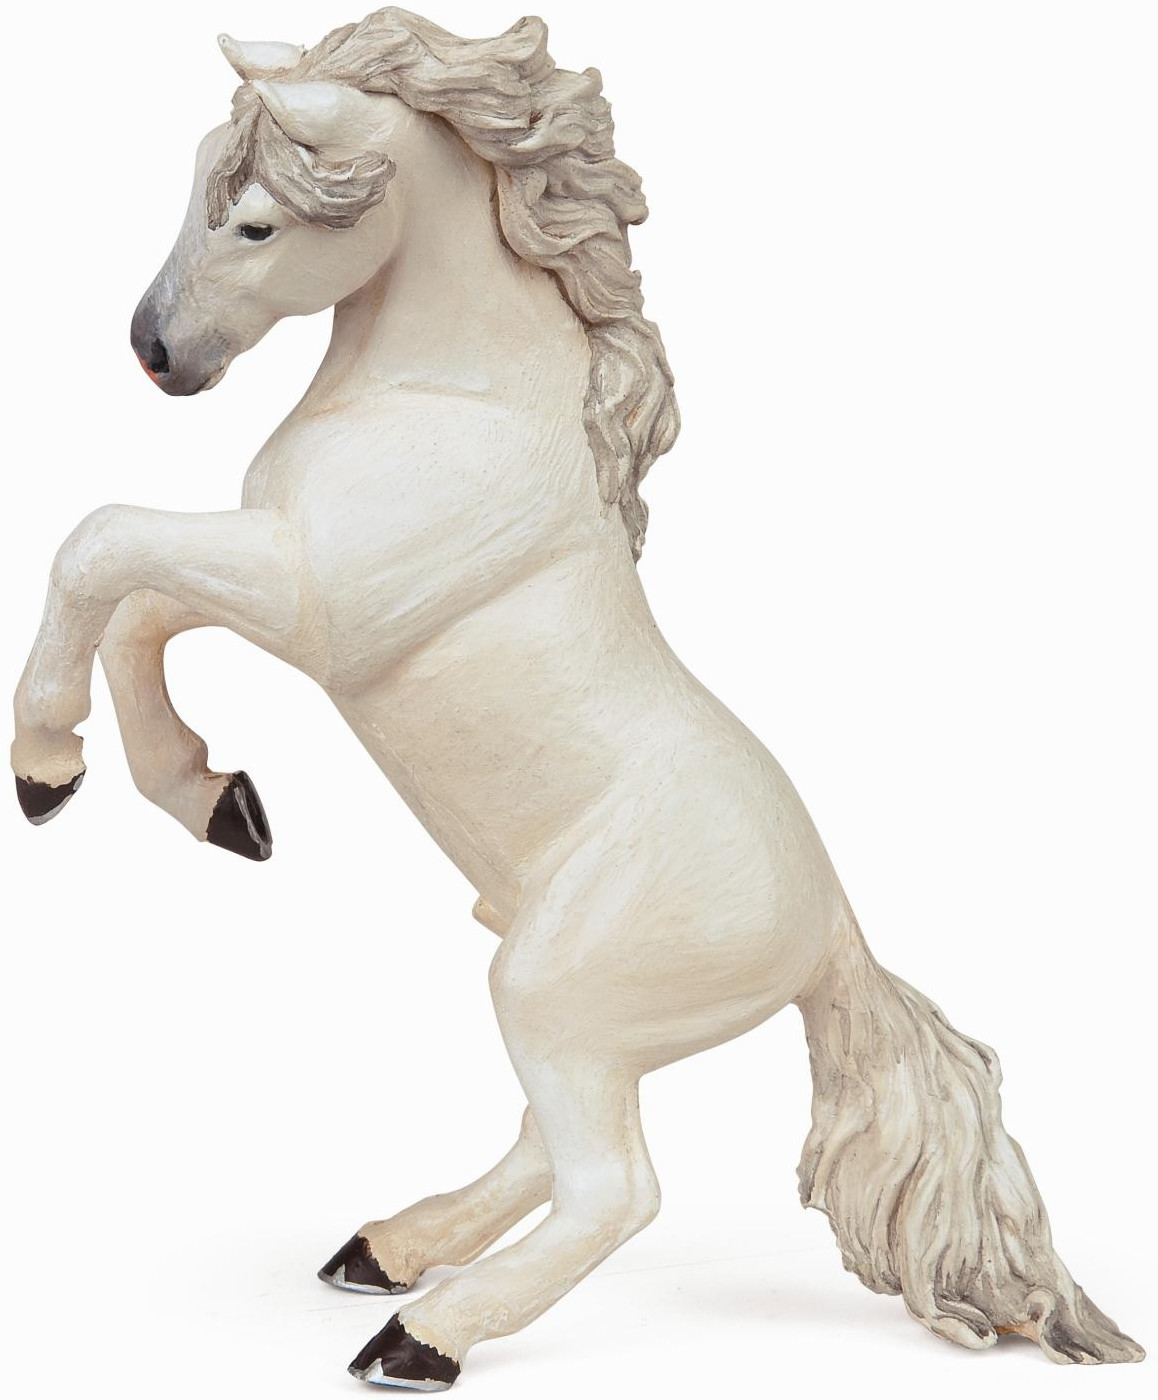 Papo - Reared-Up Horse - White - New Style